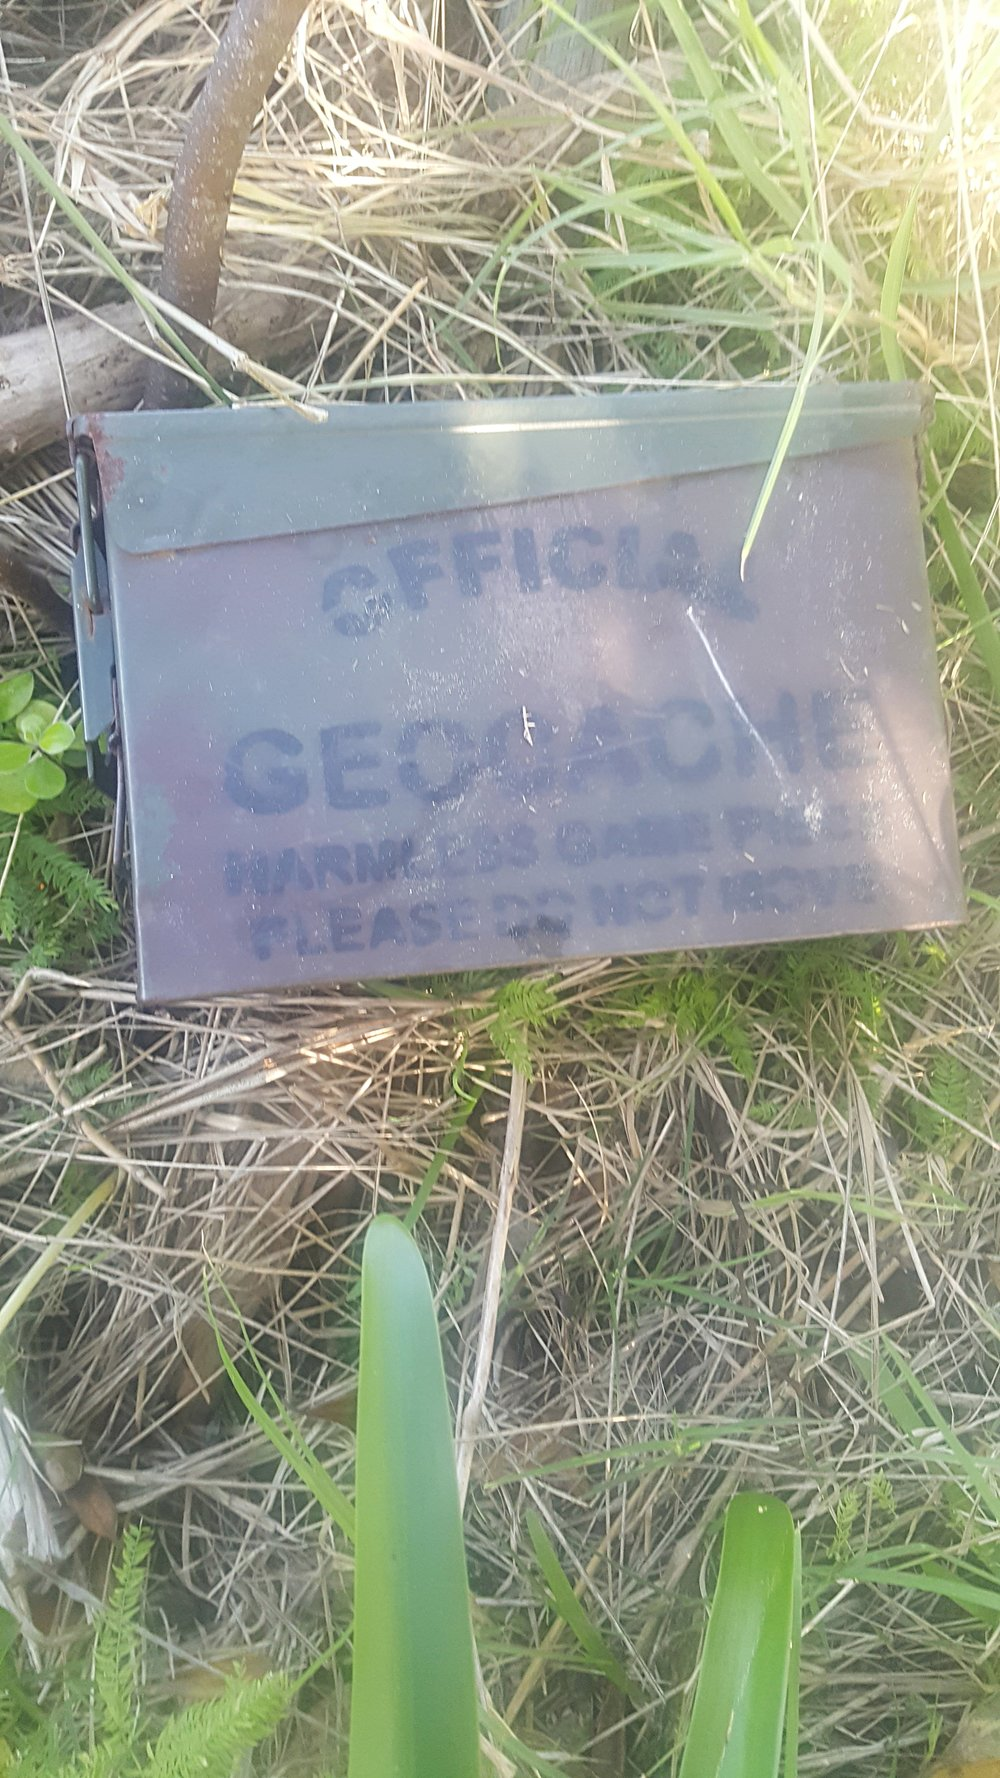 GeoCache located.